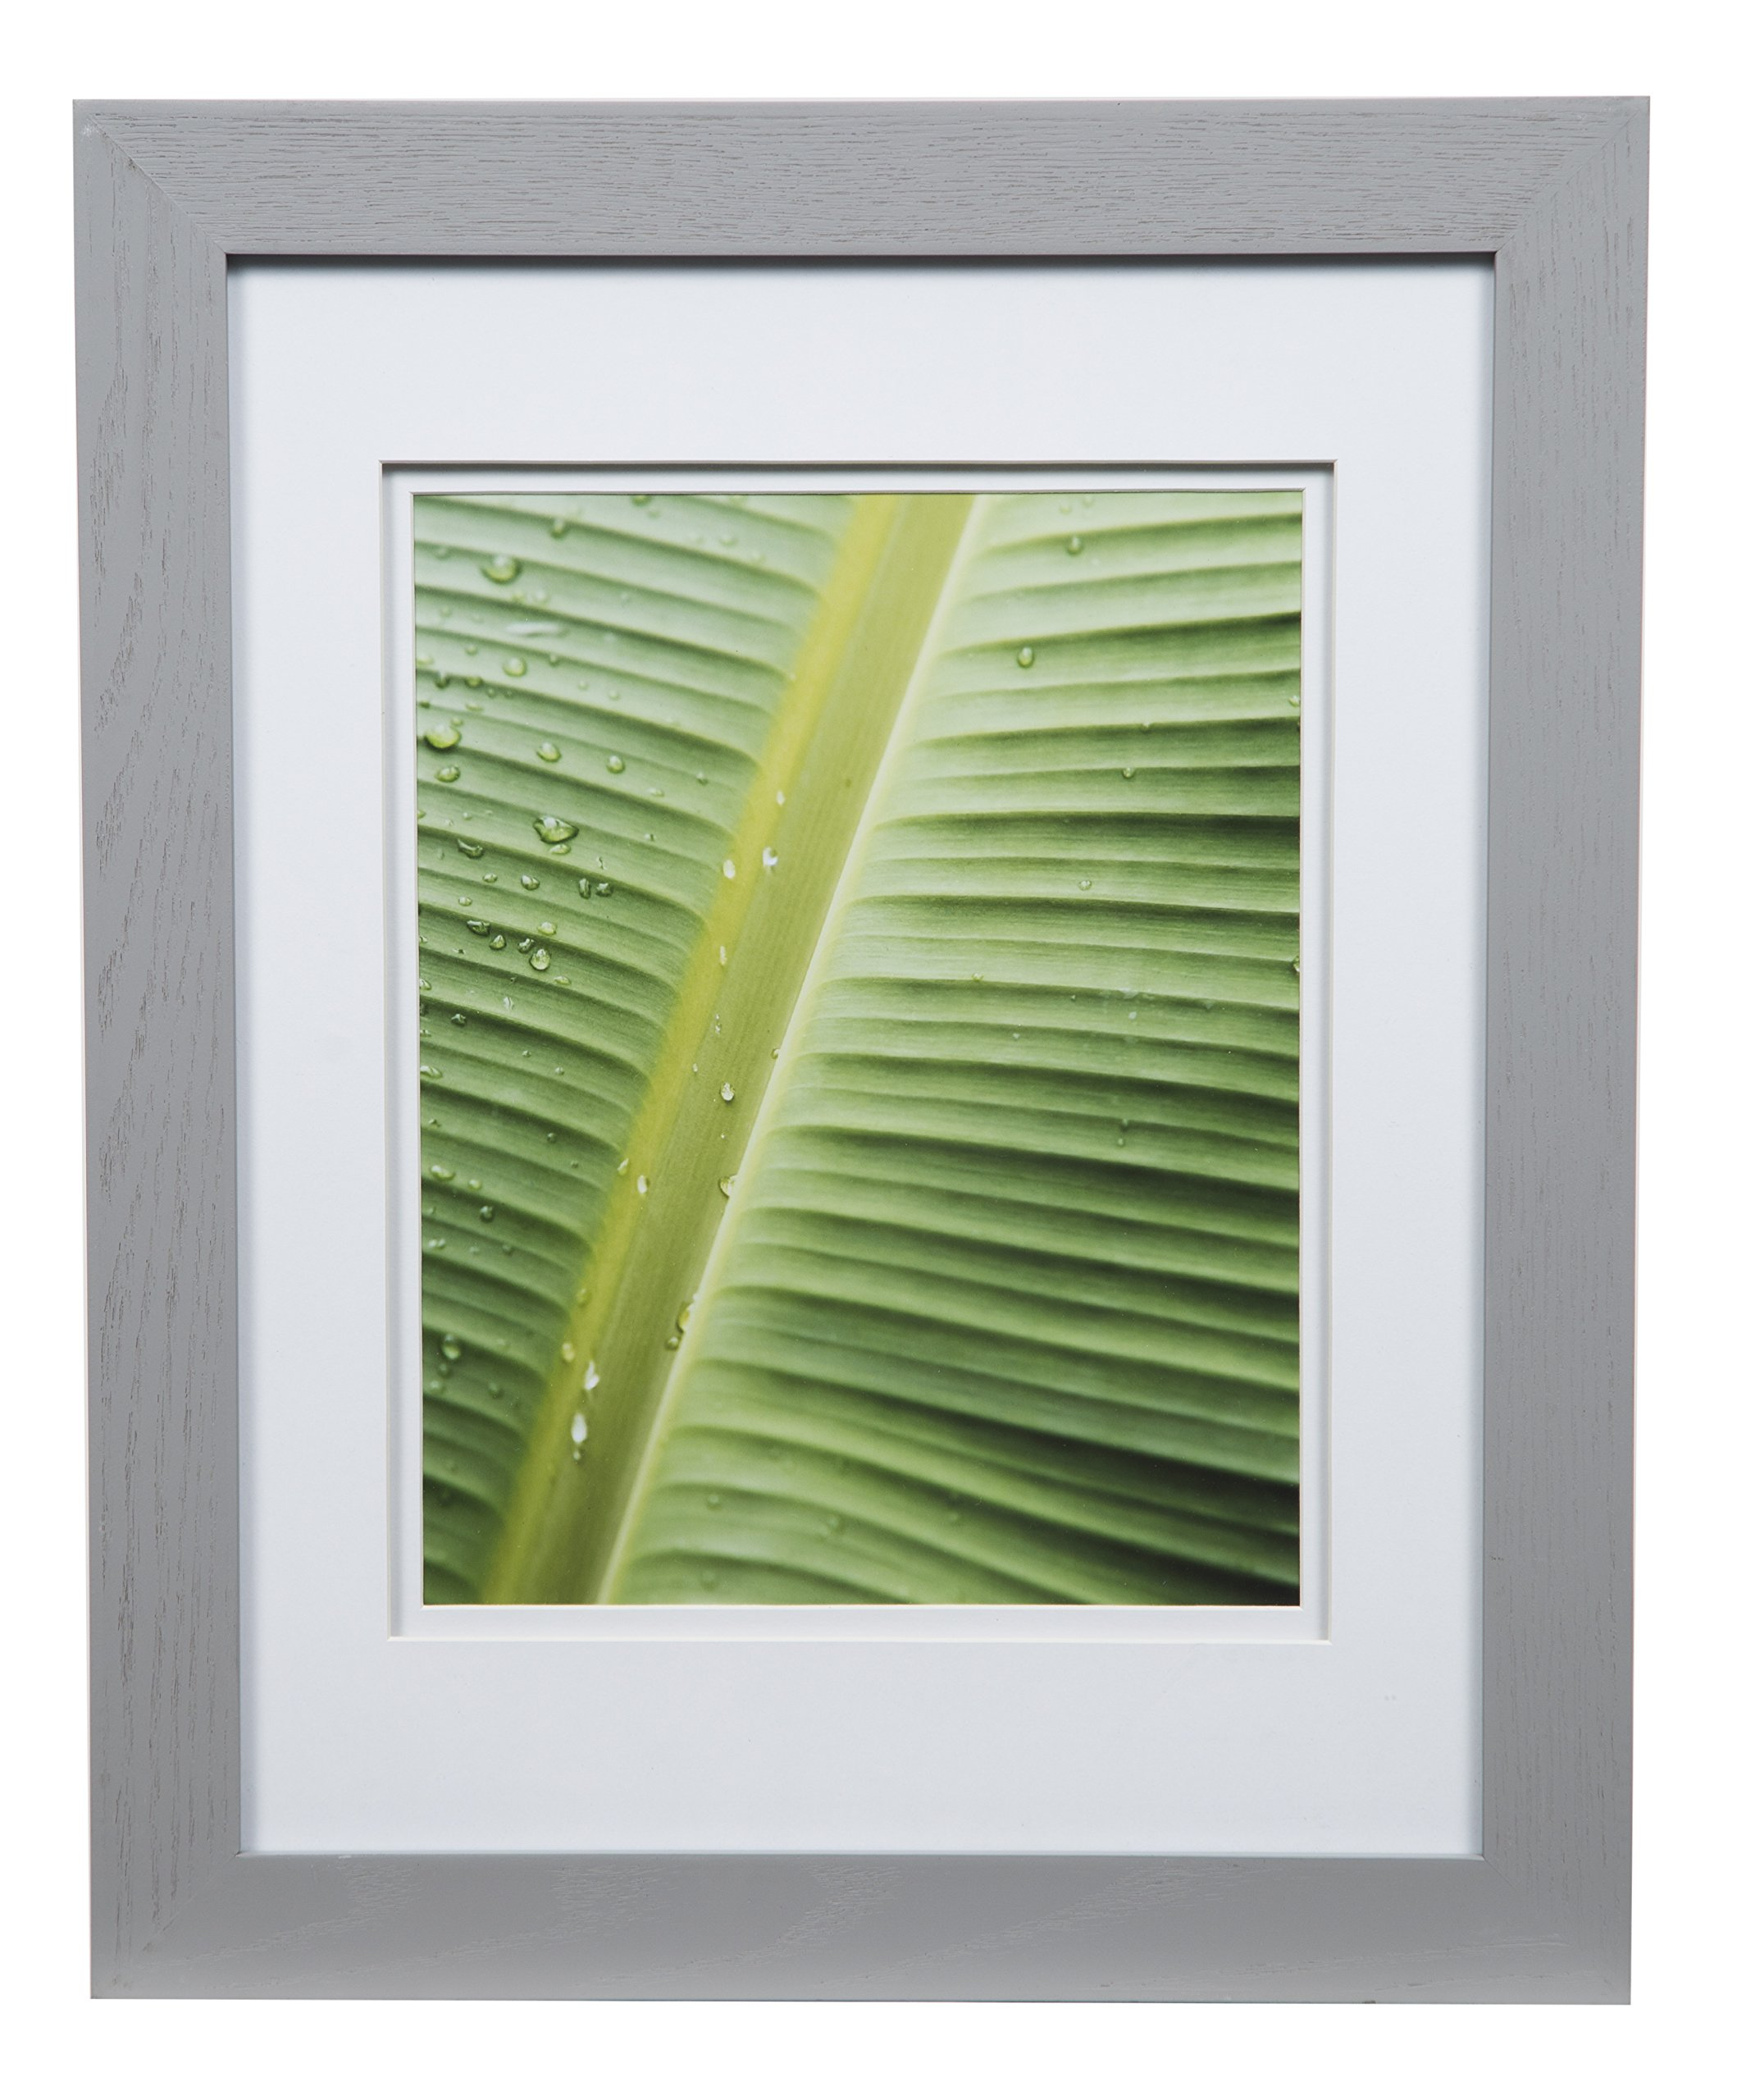 GALLERY SOLUTIONS 11x14 Gray Wood Wall Frame with Double White Mat For 8x10 Image #17FW1495